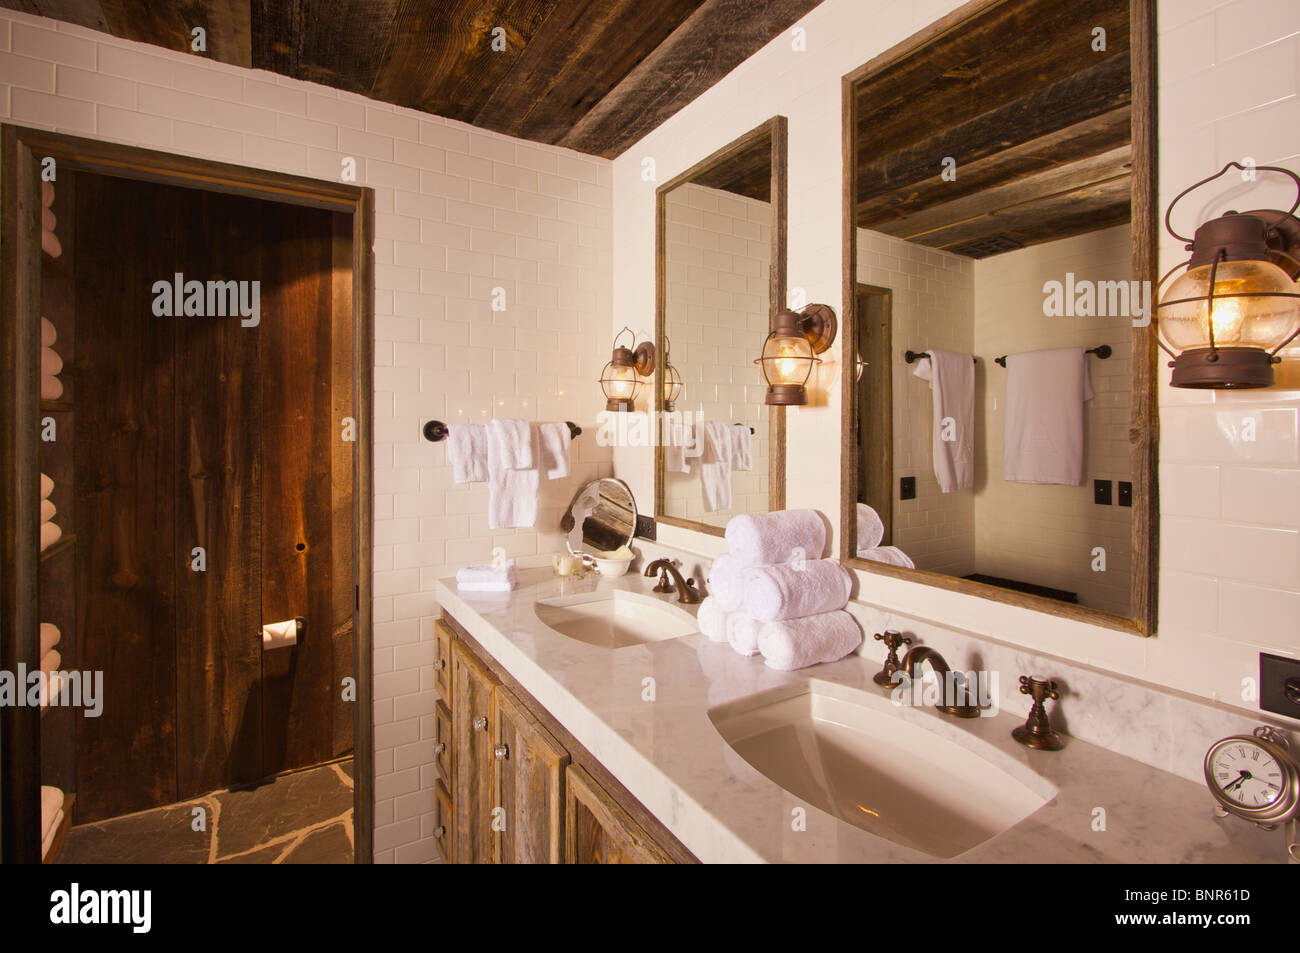 Luxurious Rustic Bathroom with Mining Lamps in Spa Setting Stock ...